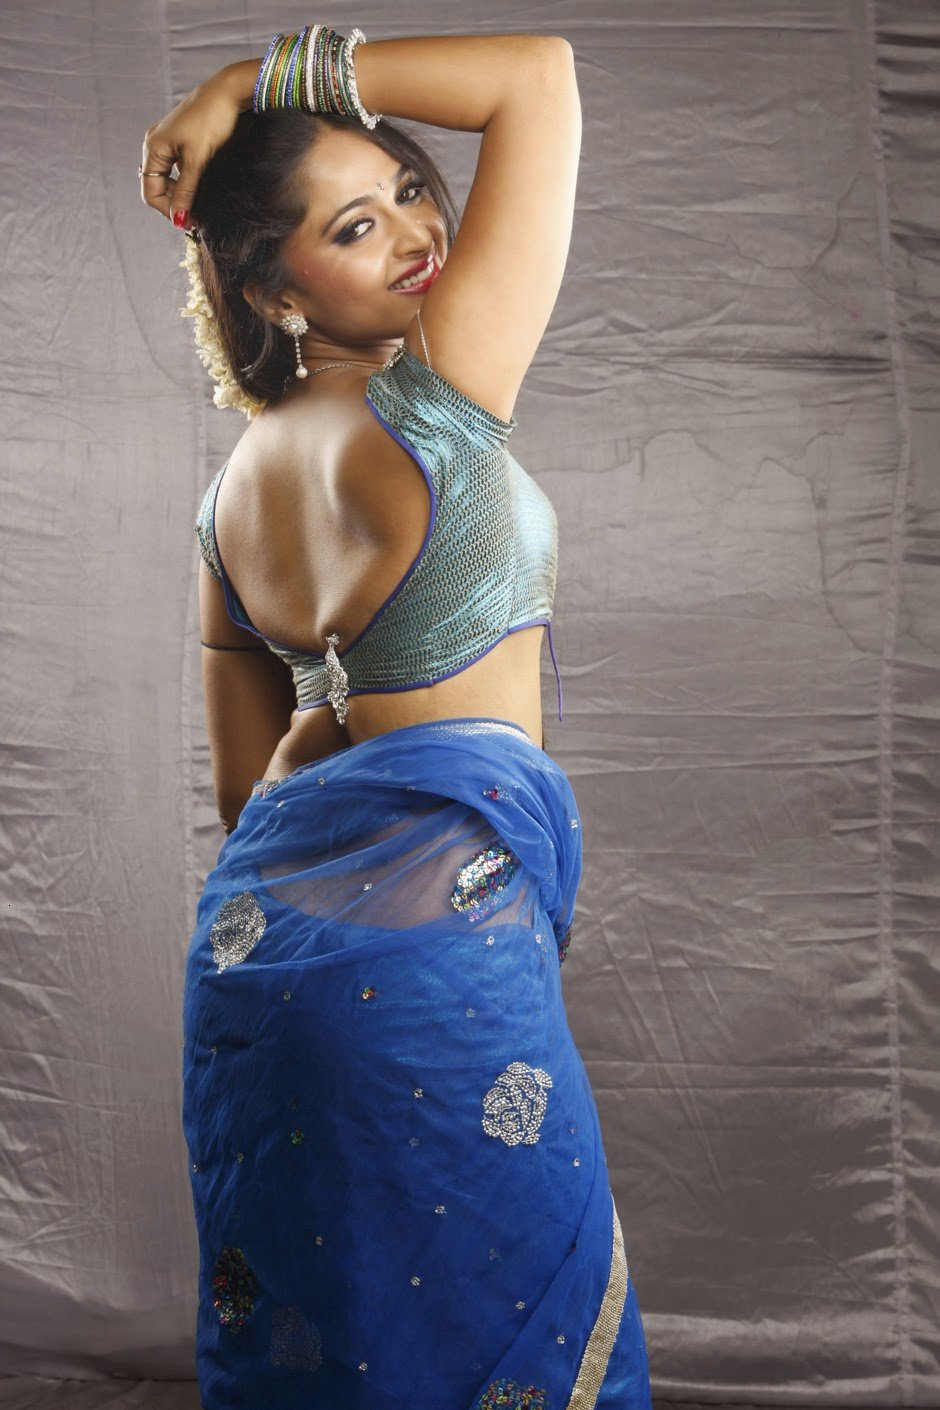 Anushka Shetty Hot In Backless Blouse Photos and Navel Show HD Stills